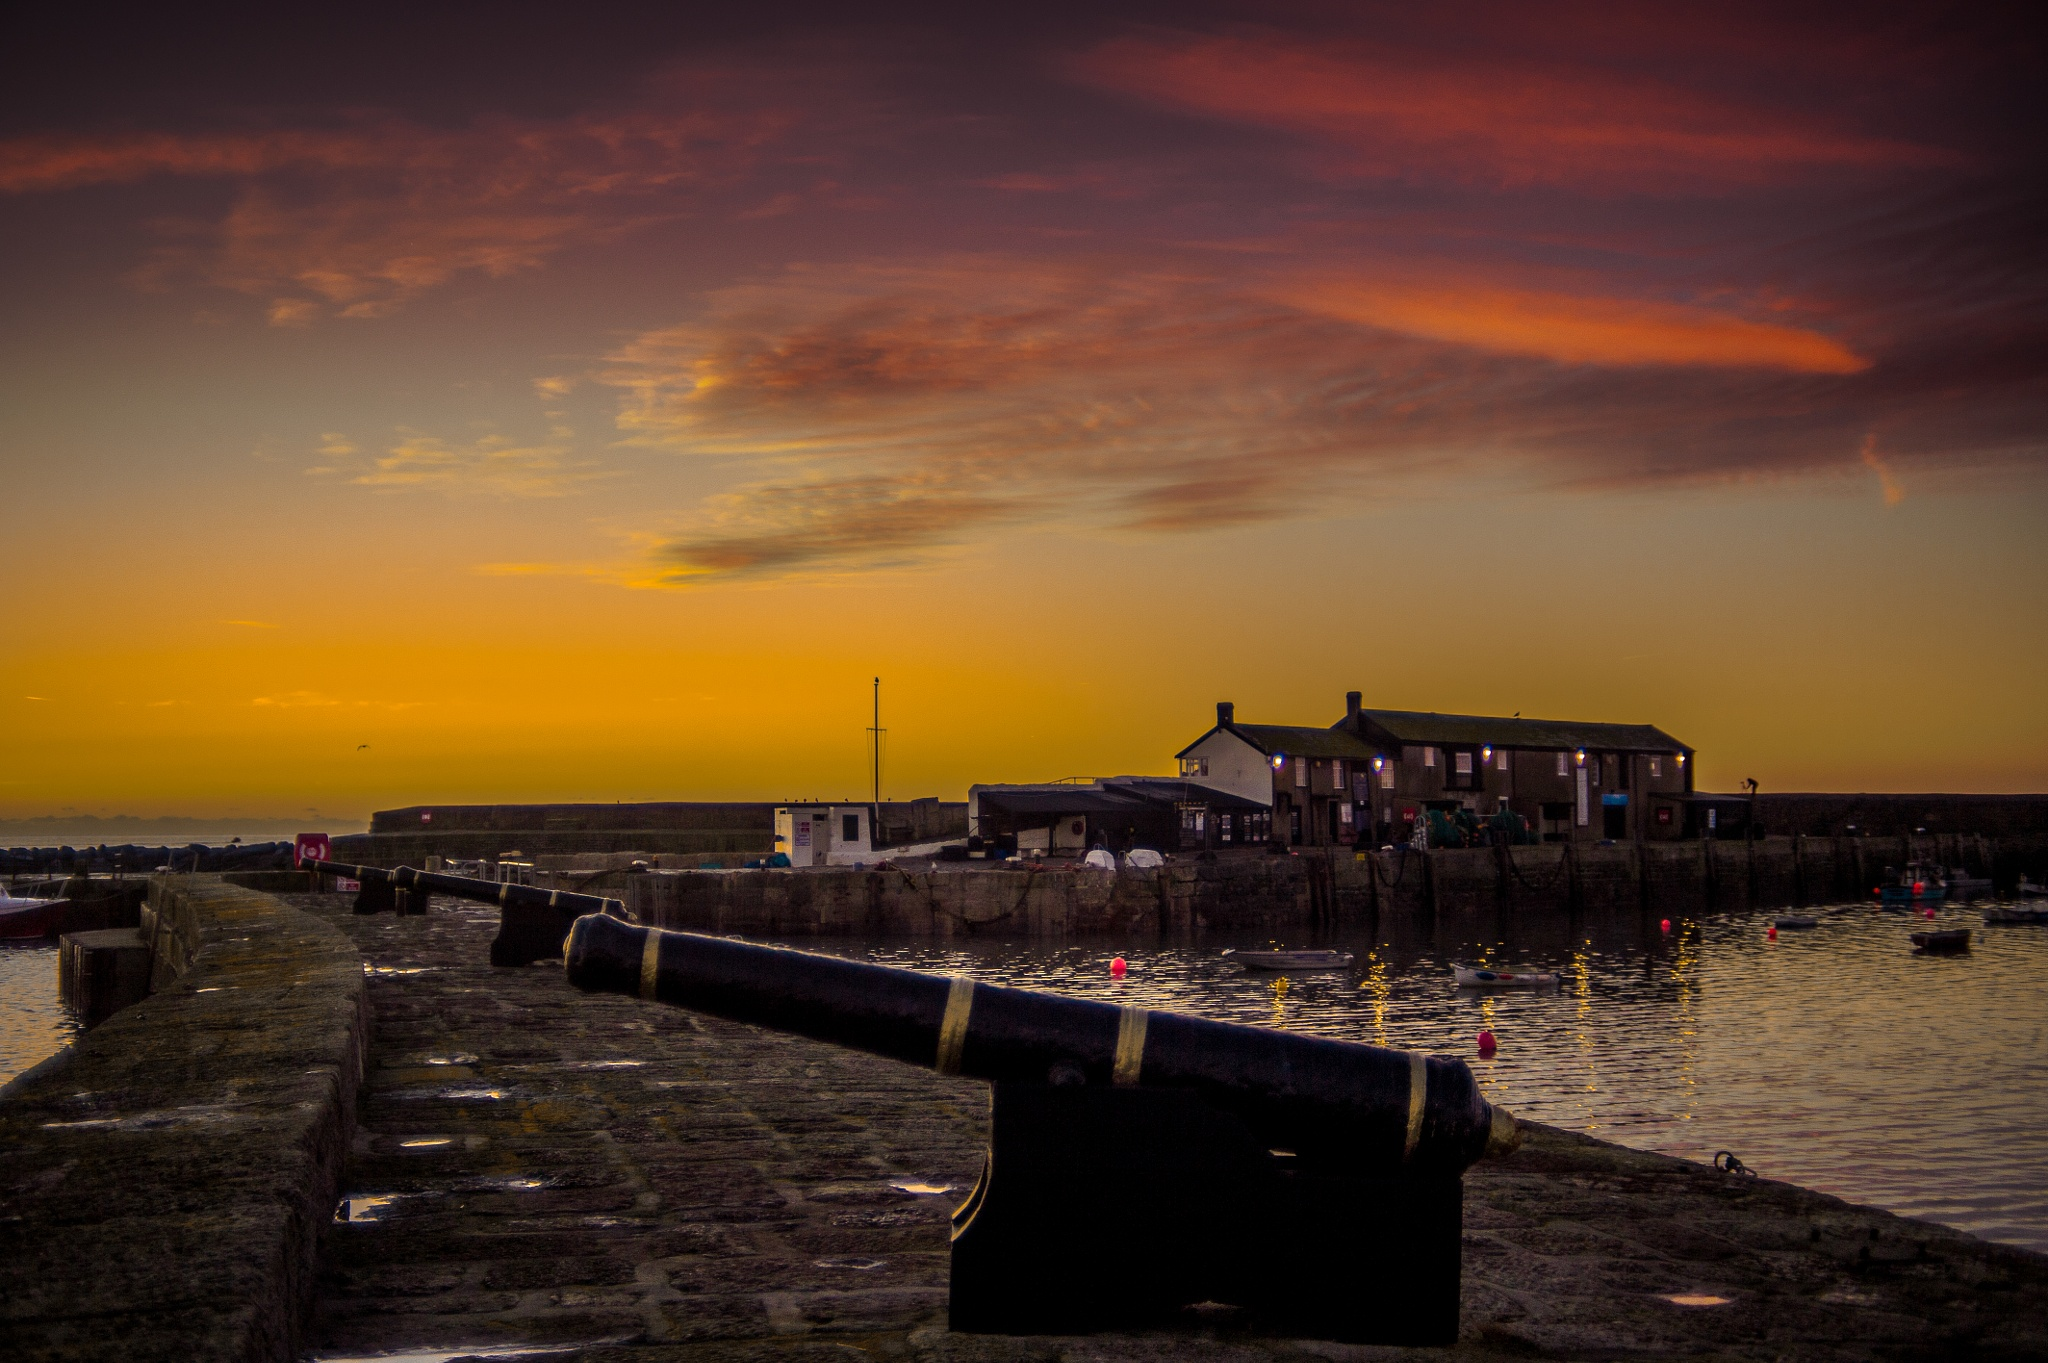 Sunrise at Lyme by Russell Clarke